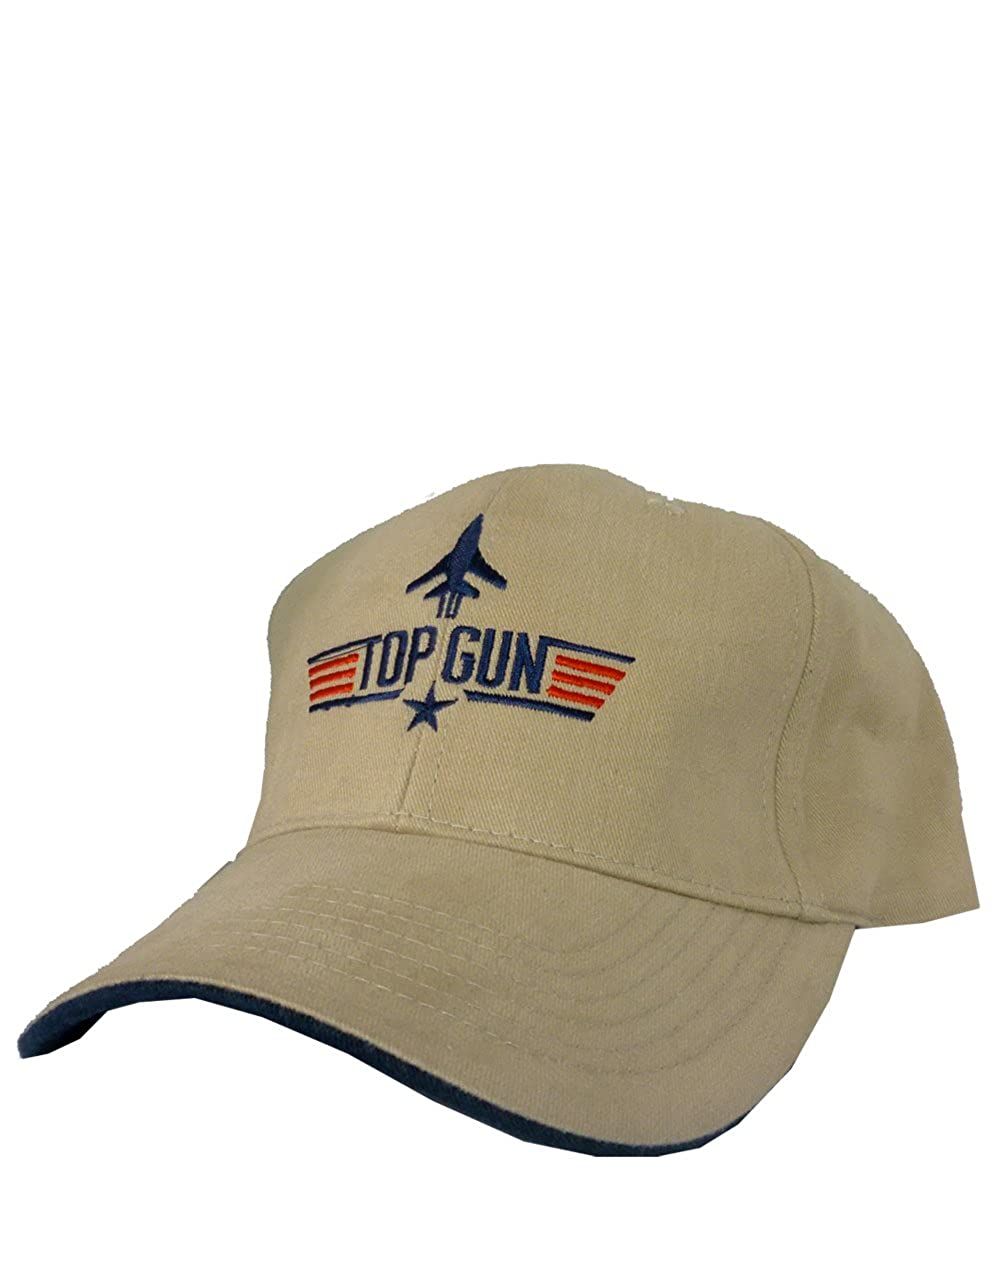 Beige Colore The Movie Shop Ltd Top Gun-Cappello con Logo di Top Gun Donna